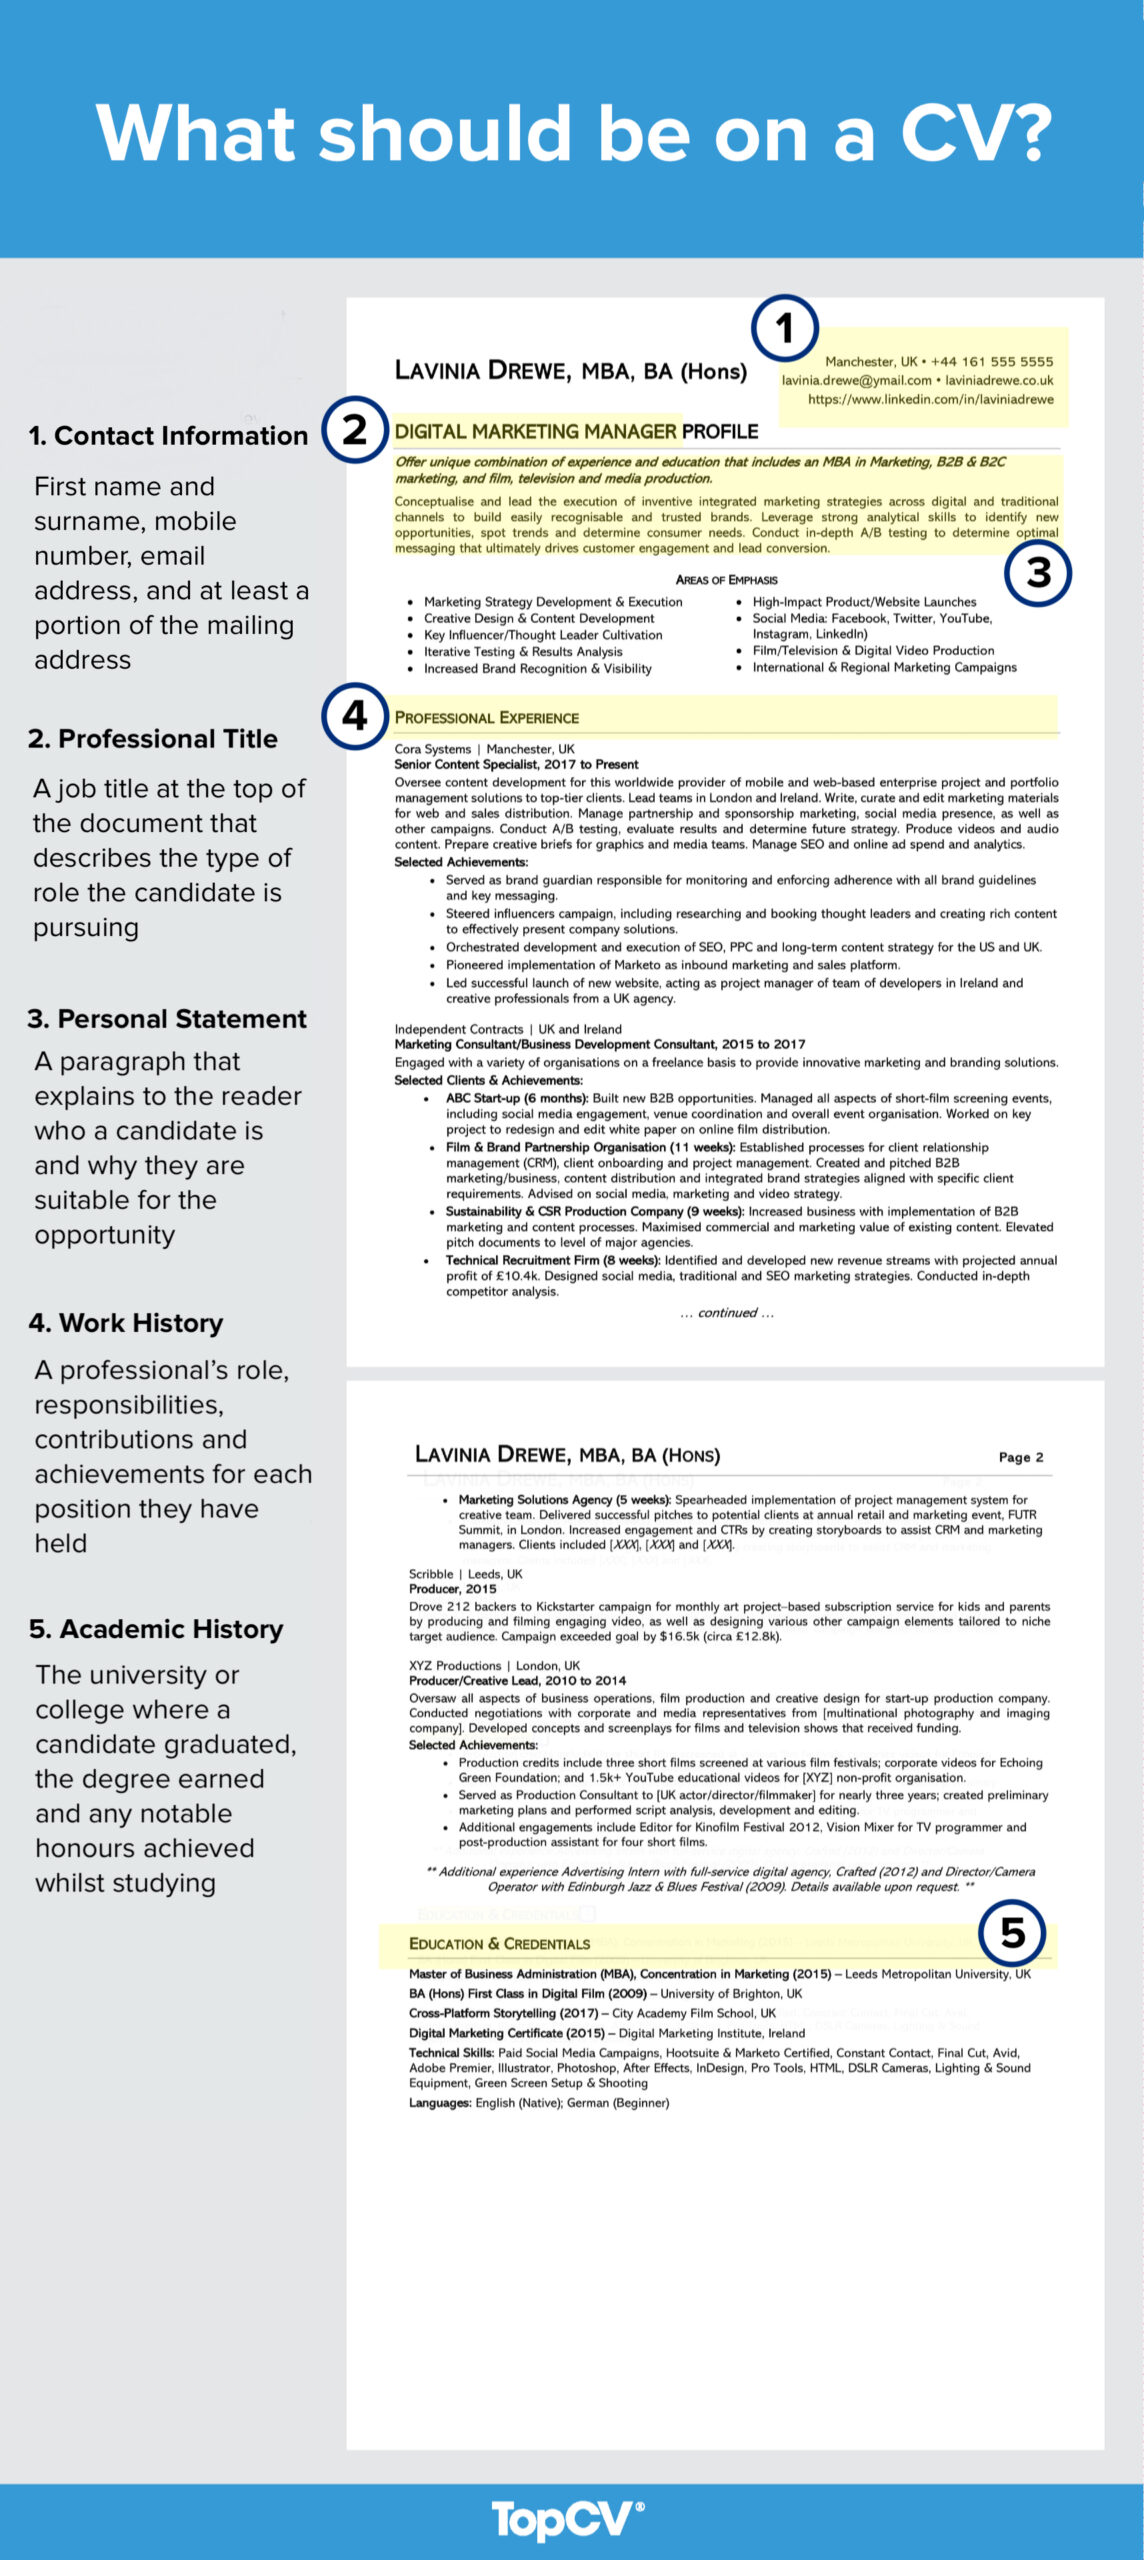 does cv mean your question answered topcv professional reader resume whatshouldbeonacv Resume Professional Reader Resume